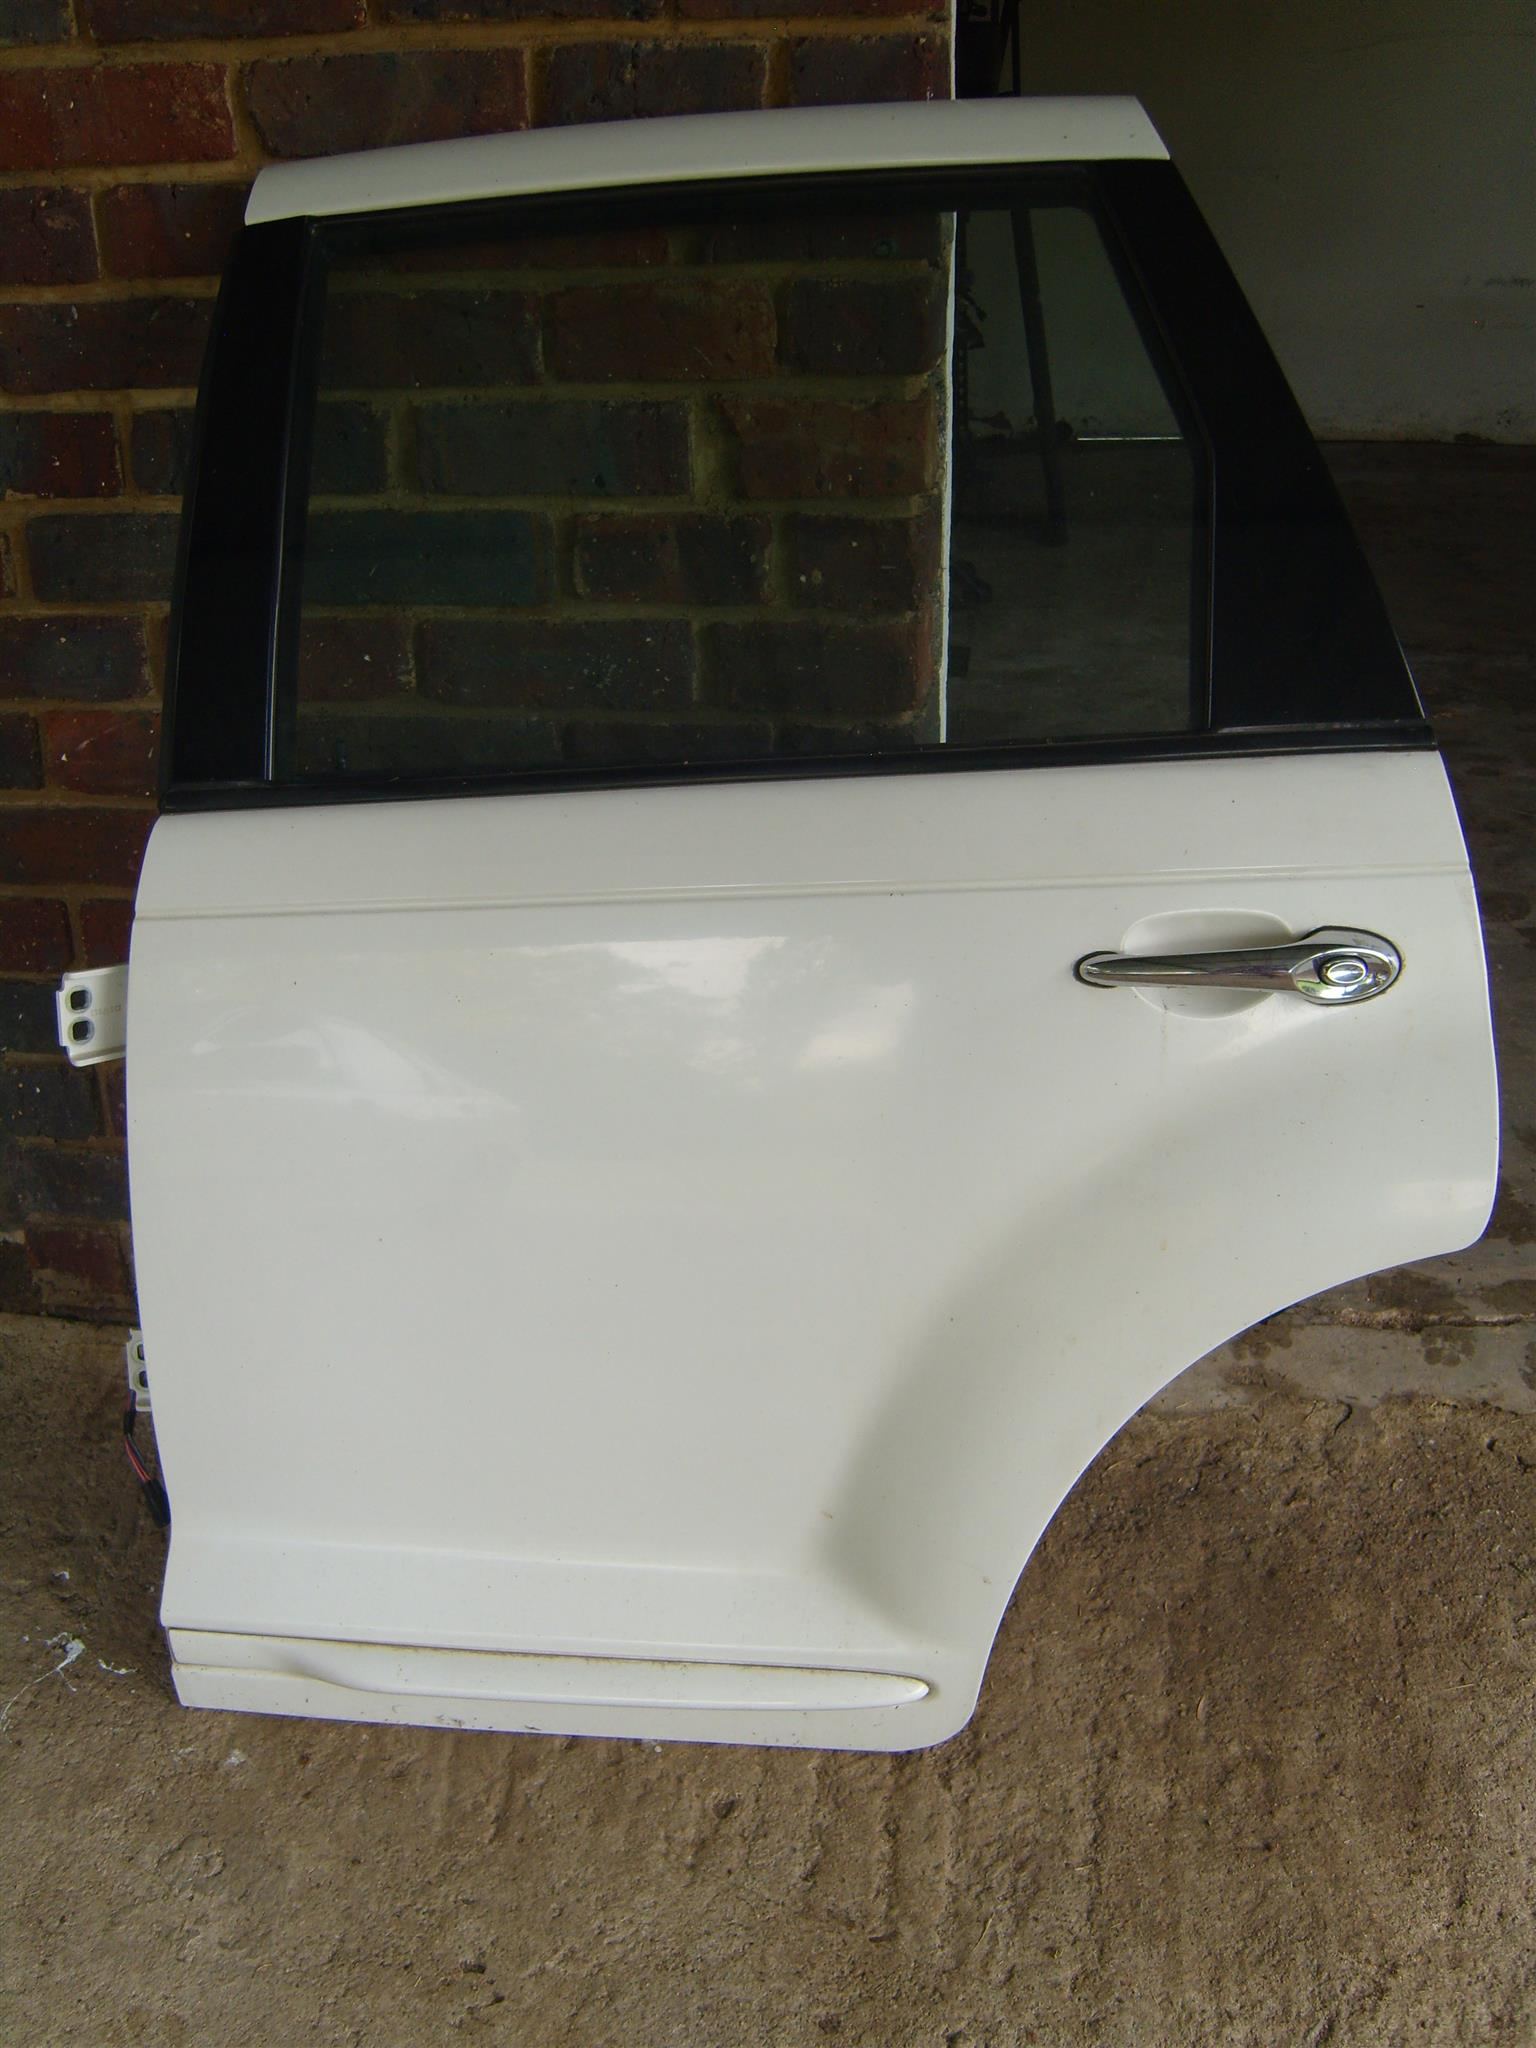 PT CRUISER Complete rear door